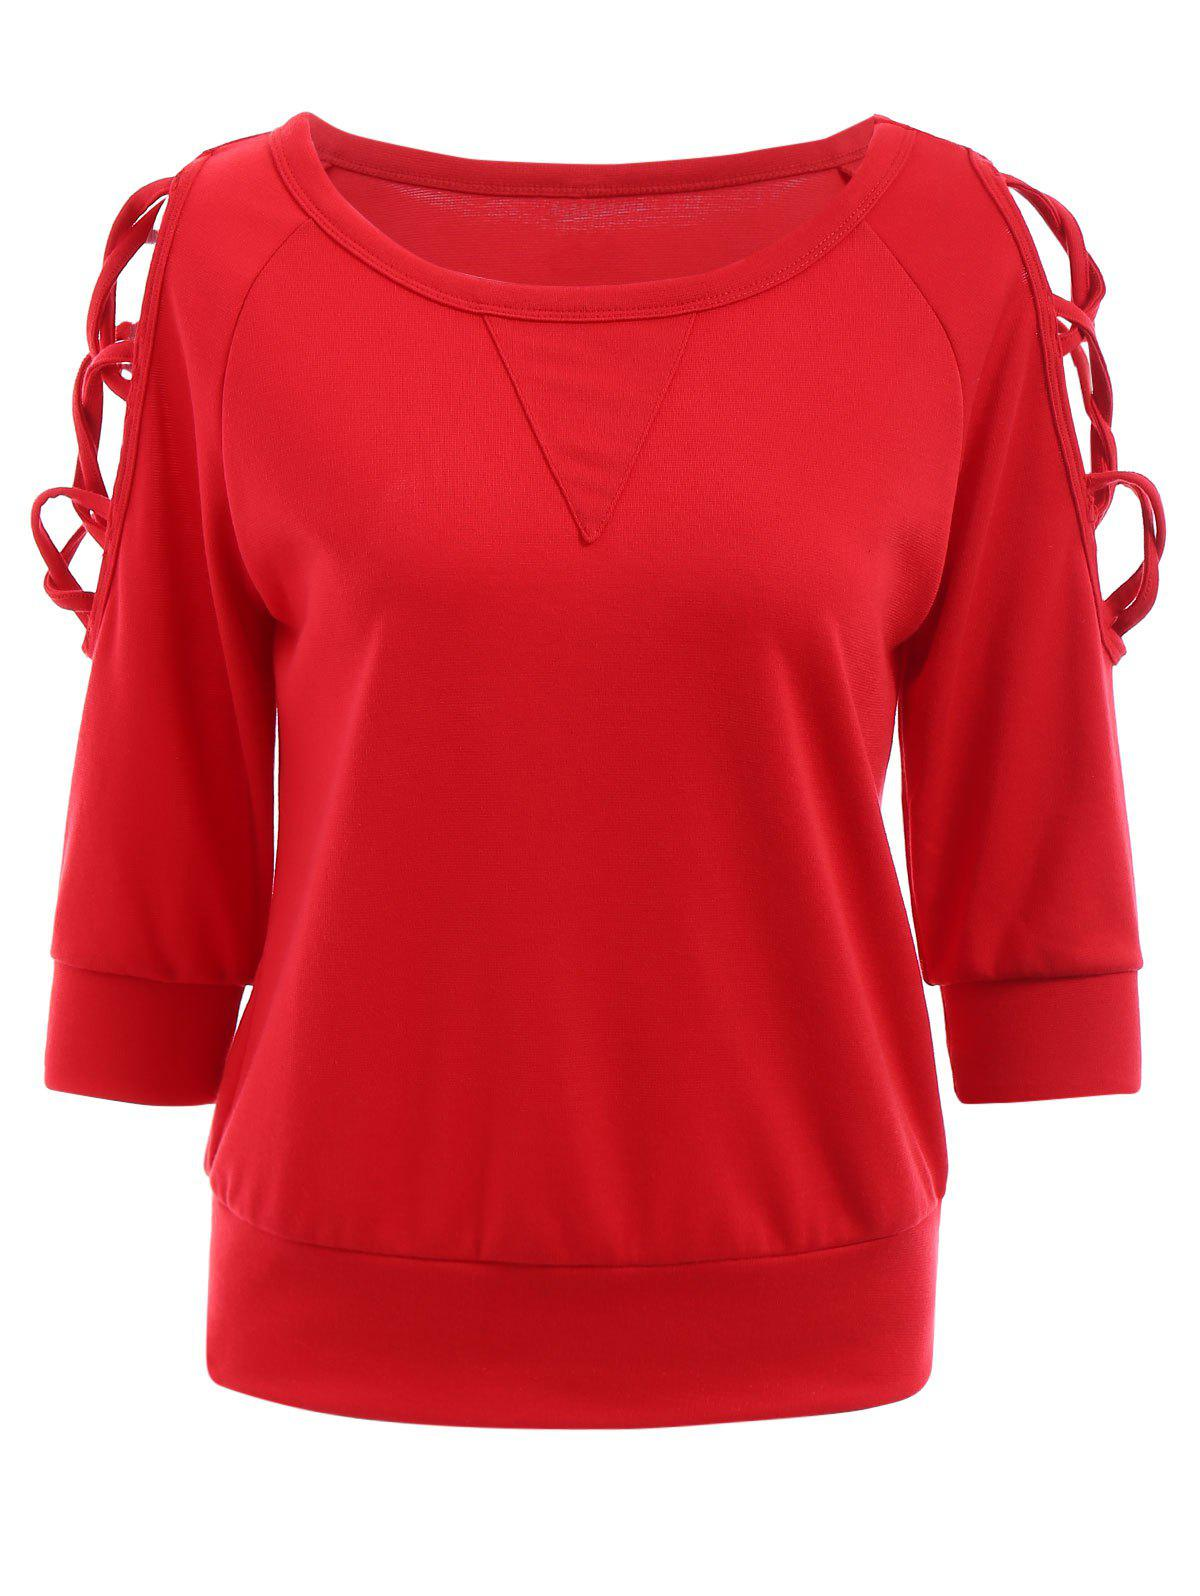 Fashionable Round Neck 3/4 Sleeve Criss-Cross Hollow Out Womens Red SweatshirtWomen<br><br><br>Size: L<br>Color: RED